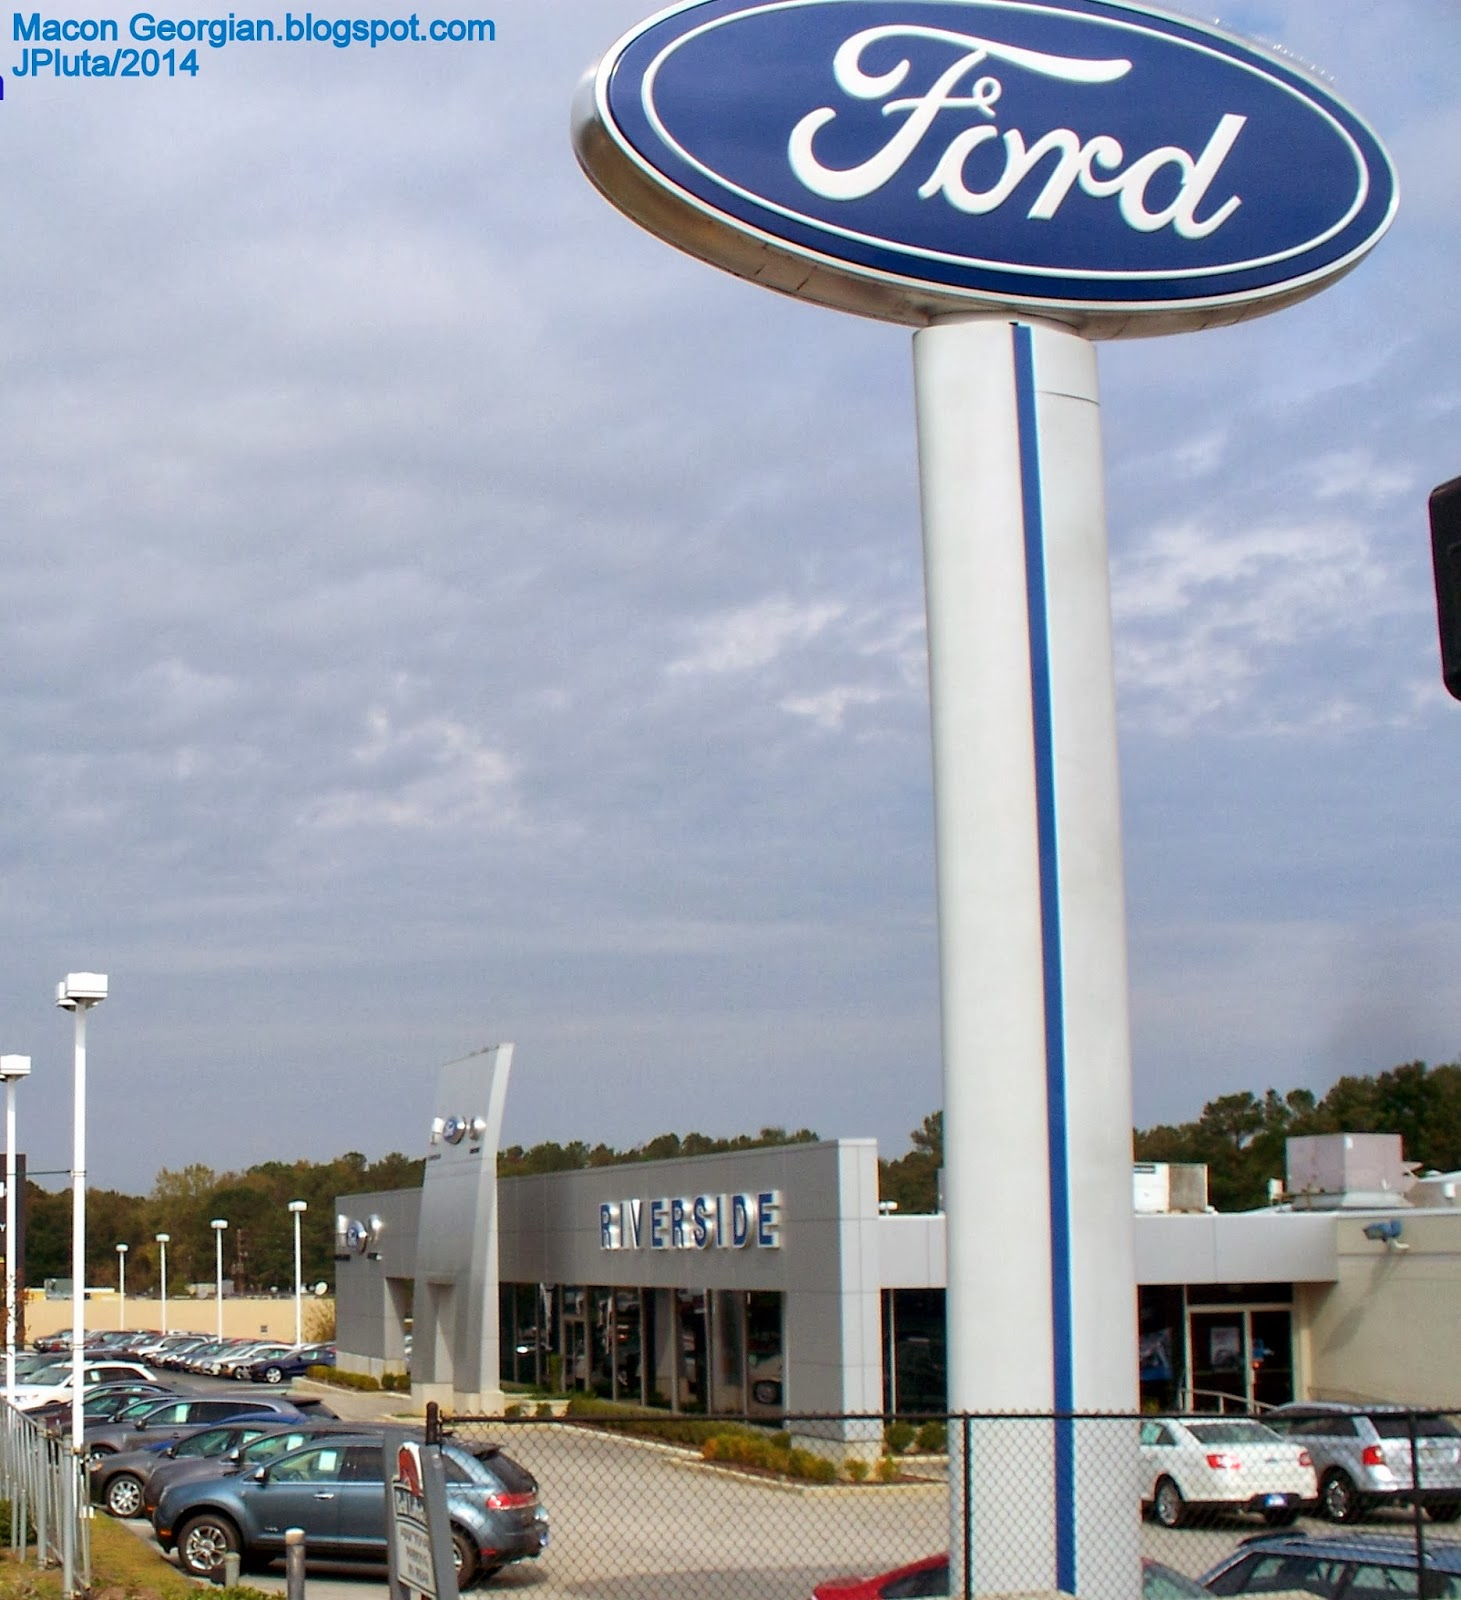 Riverside Ford Macon Ga >> Riverside Ford Lincoln Inc Ford Dealership In Macon Ga | Autos Post